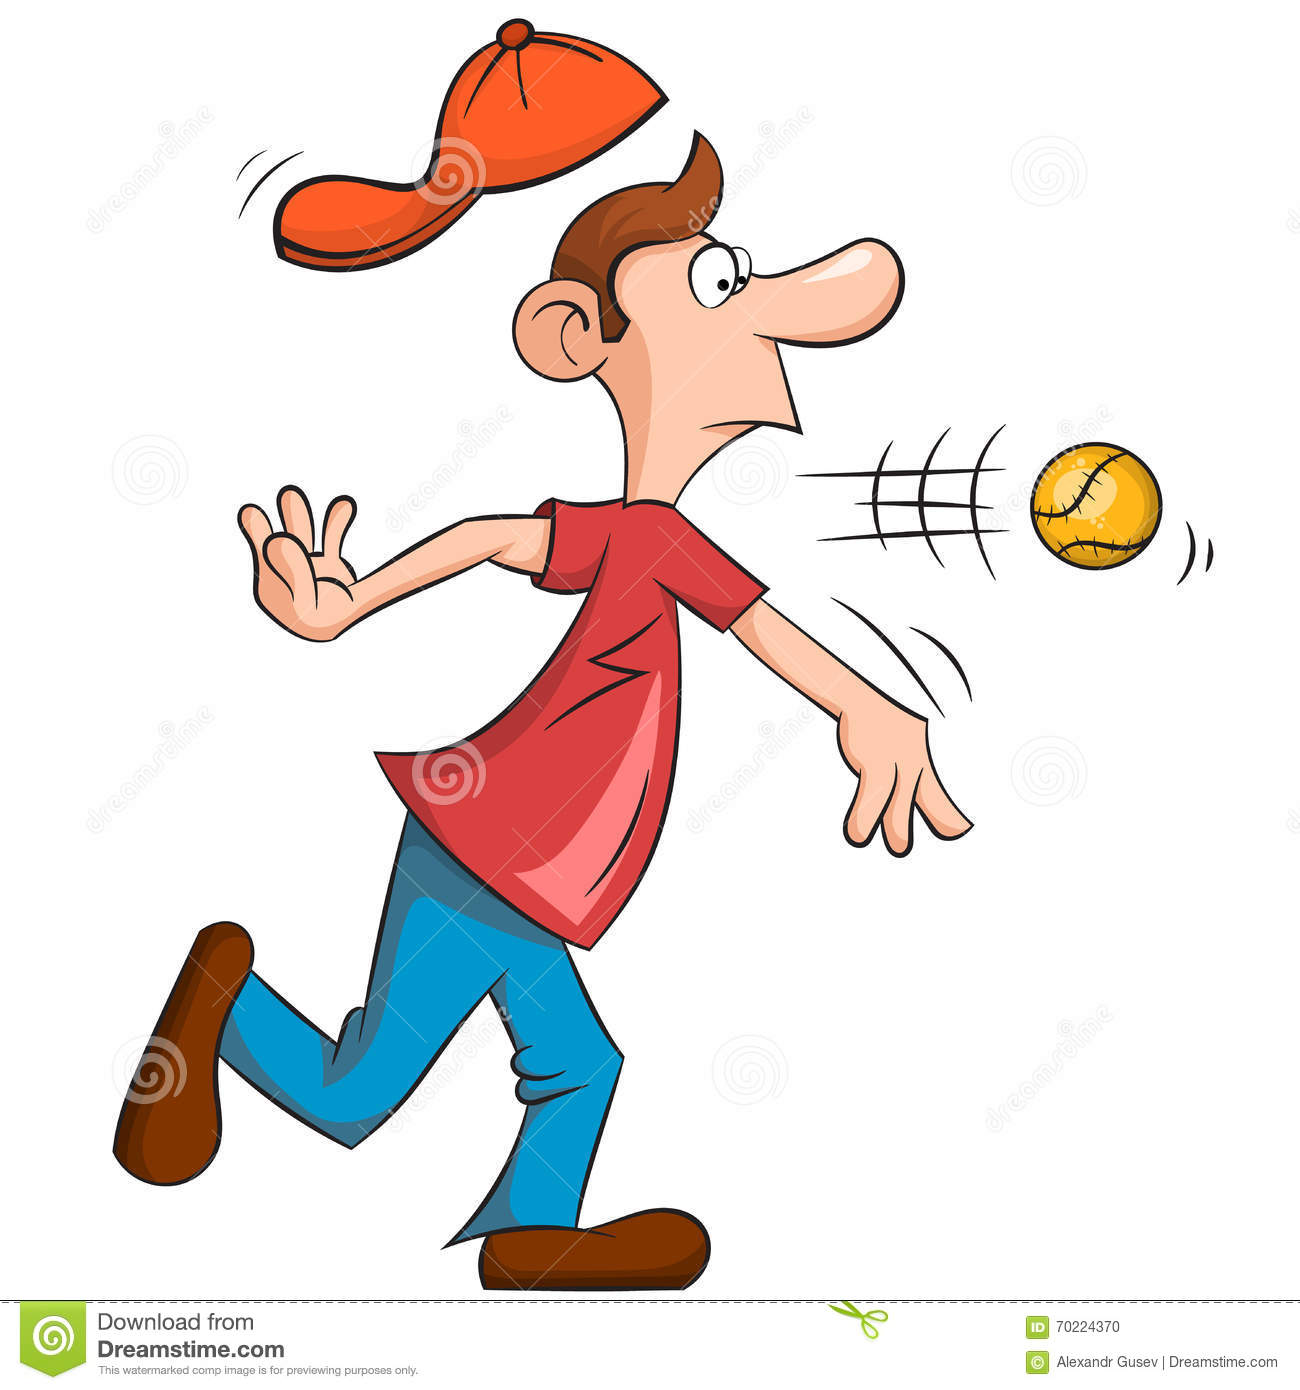 Cartoon Characters With Big Noses : Man with a big nose playing baseball stock vector